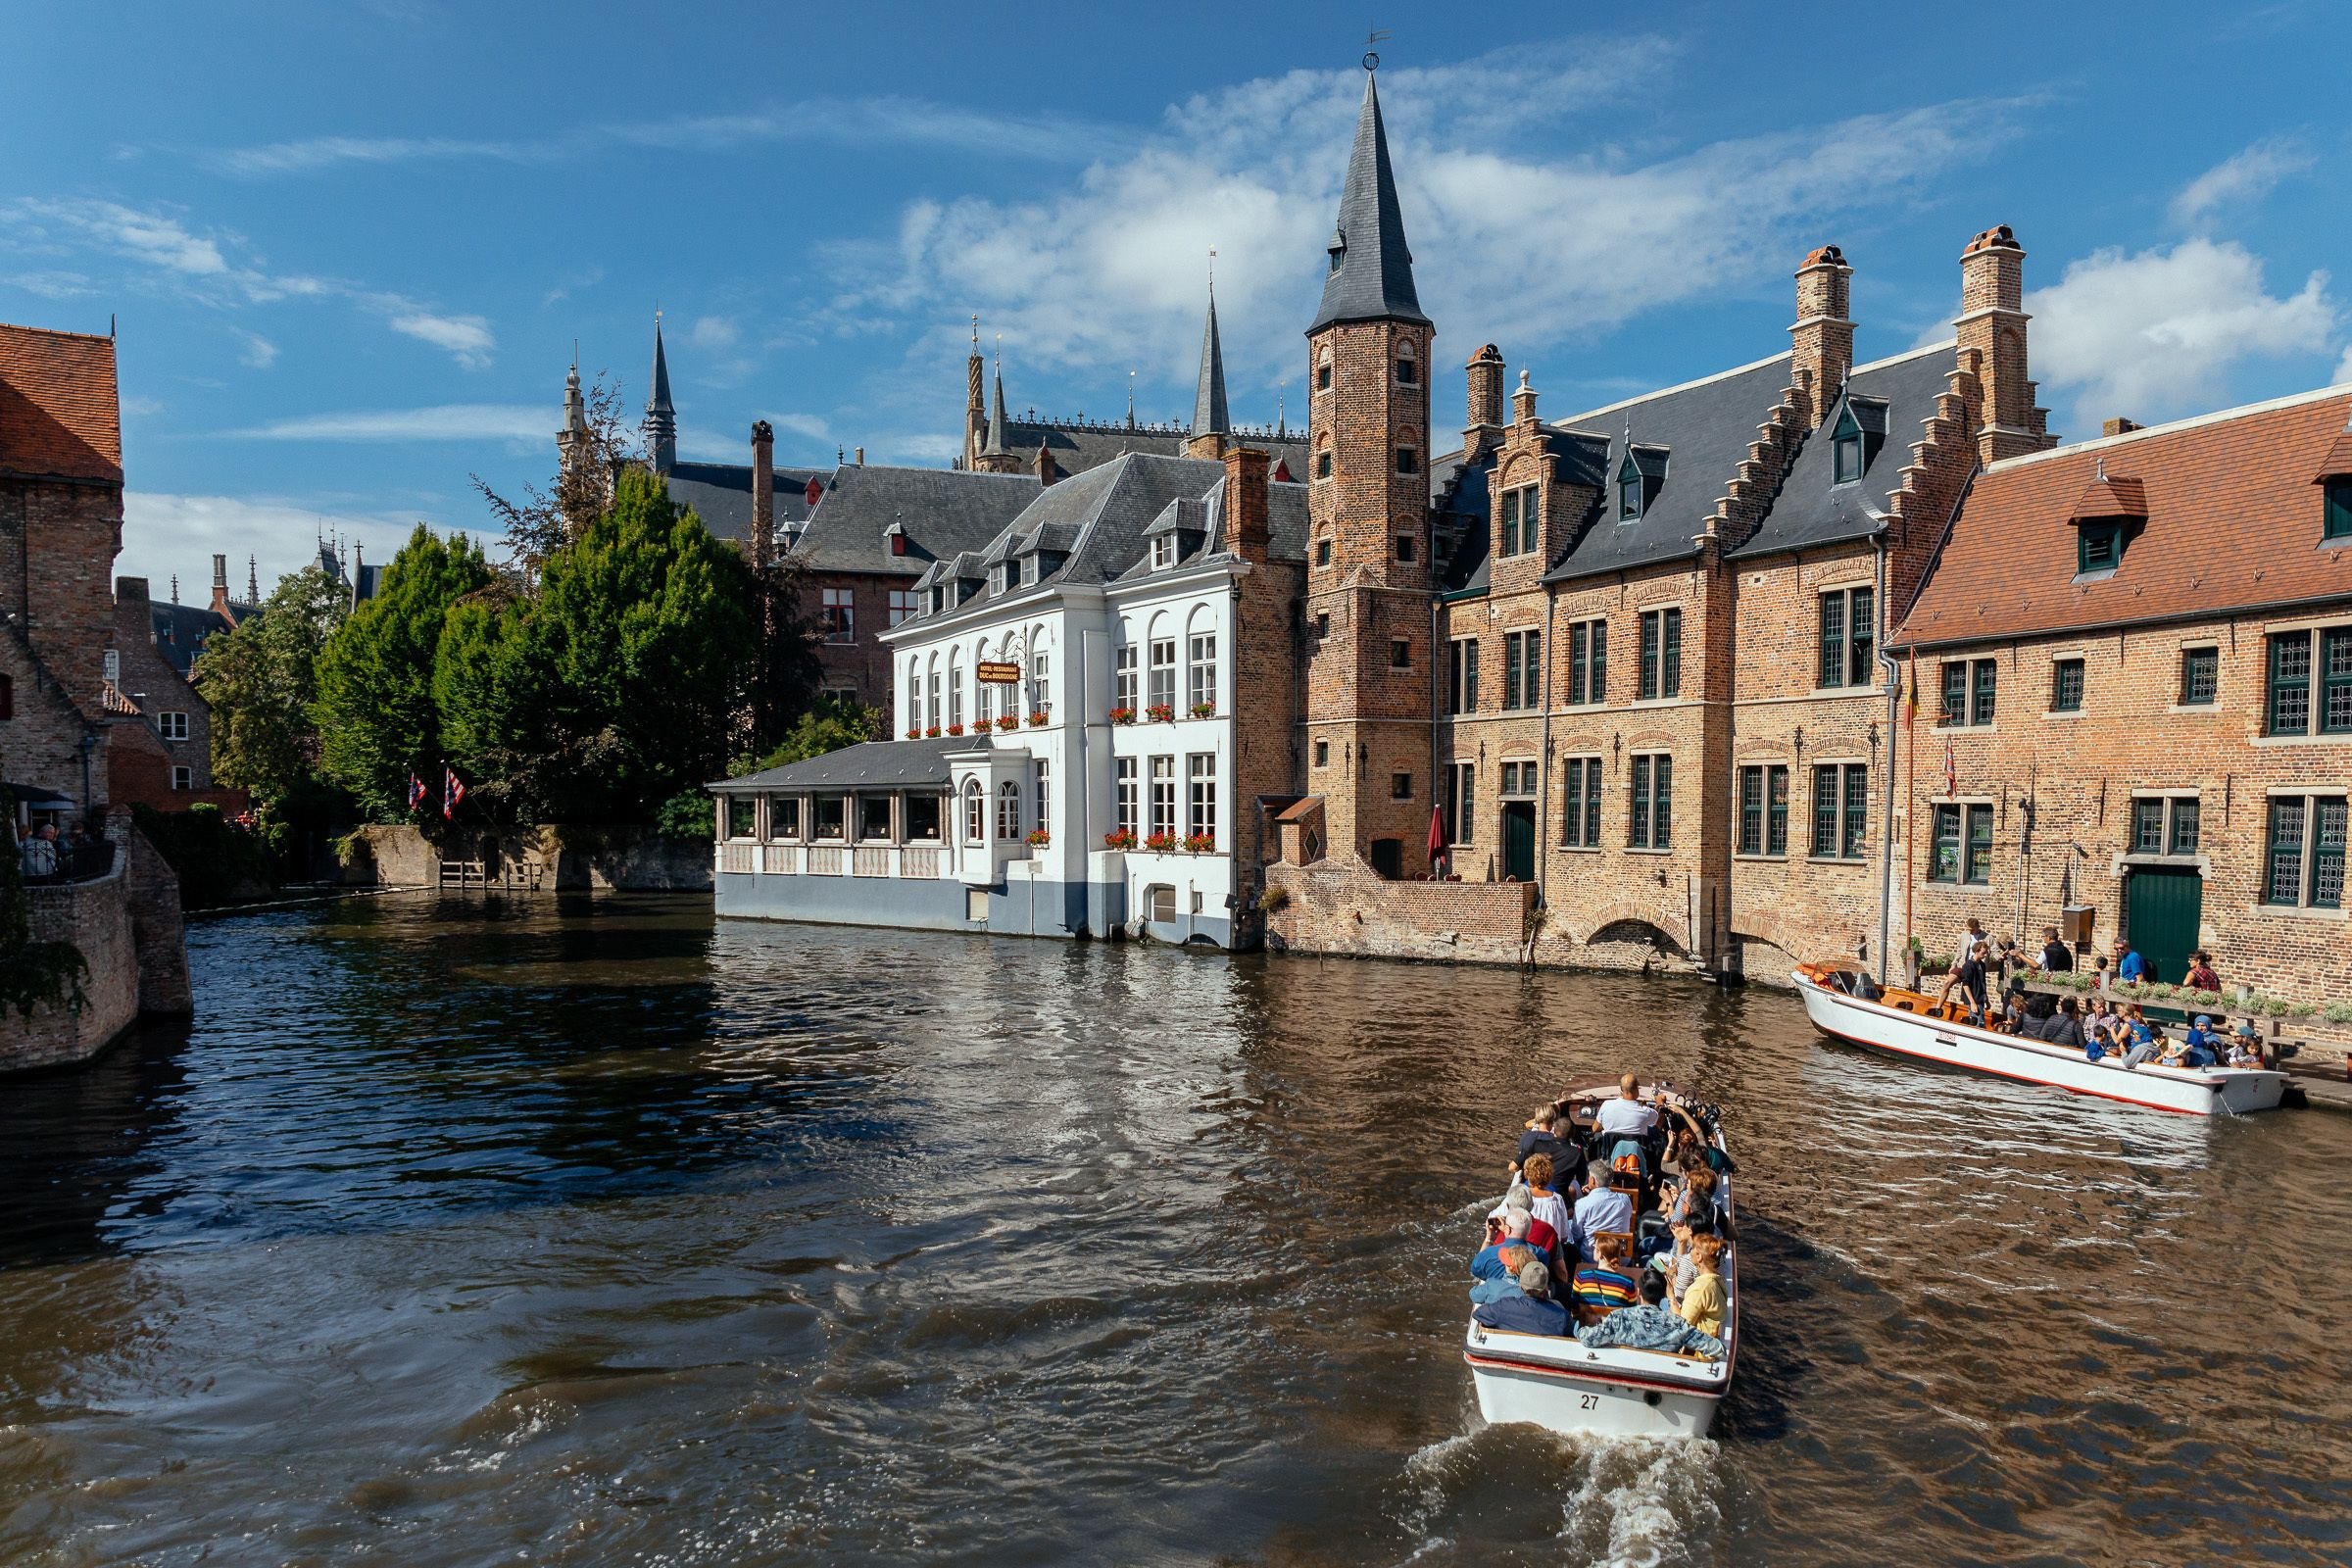 Group boat tour in Bruges on a nice day